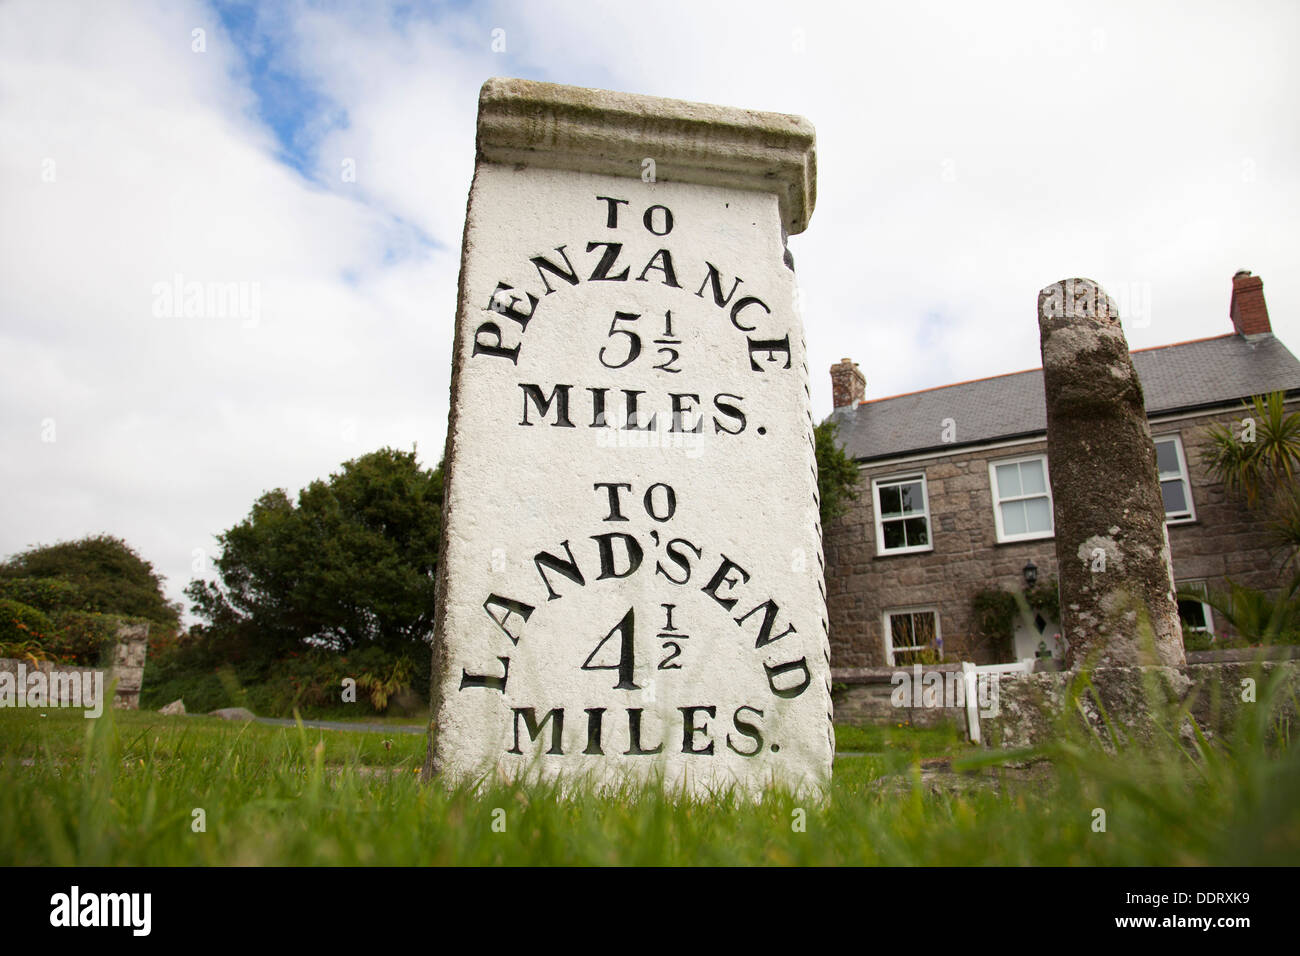 An old stone milestone on the roadside between Penzance and Lands End, Cornwall, England, U.K. - Stock Image